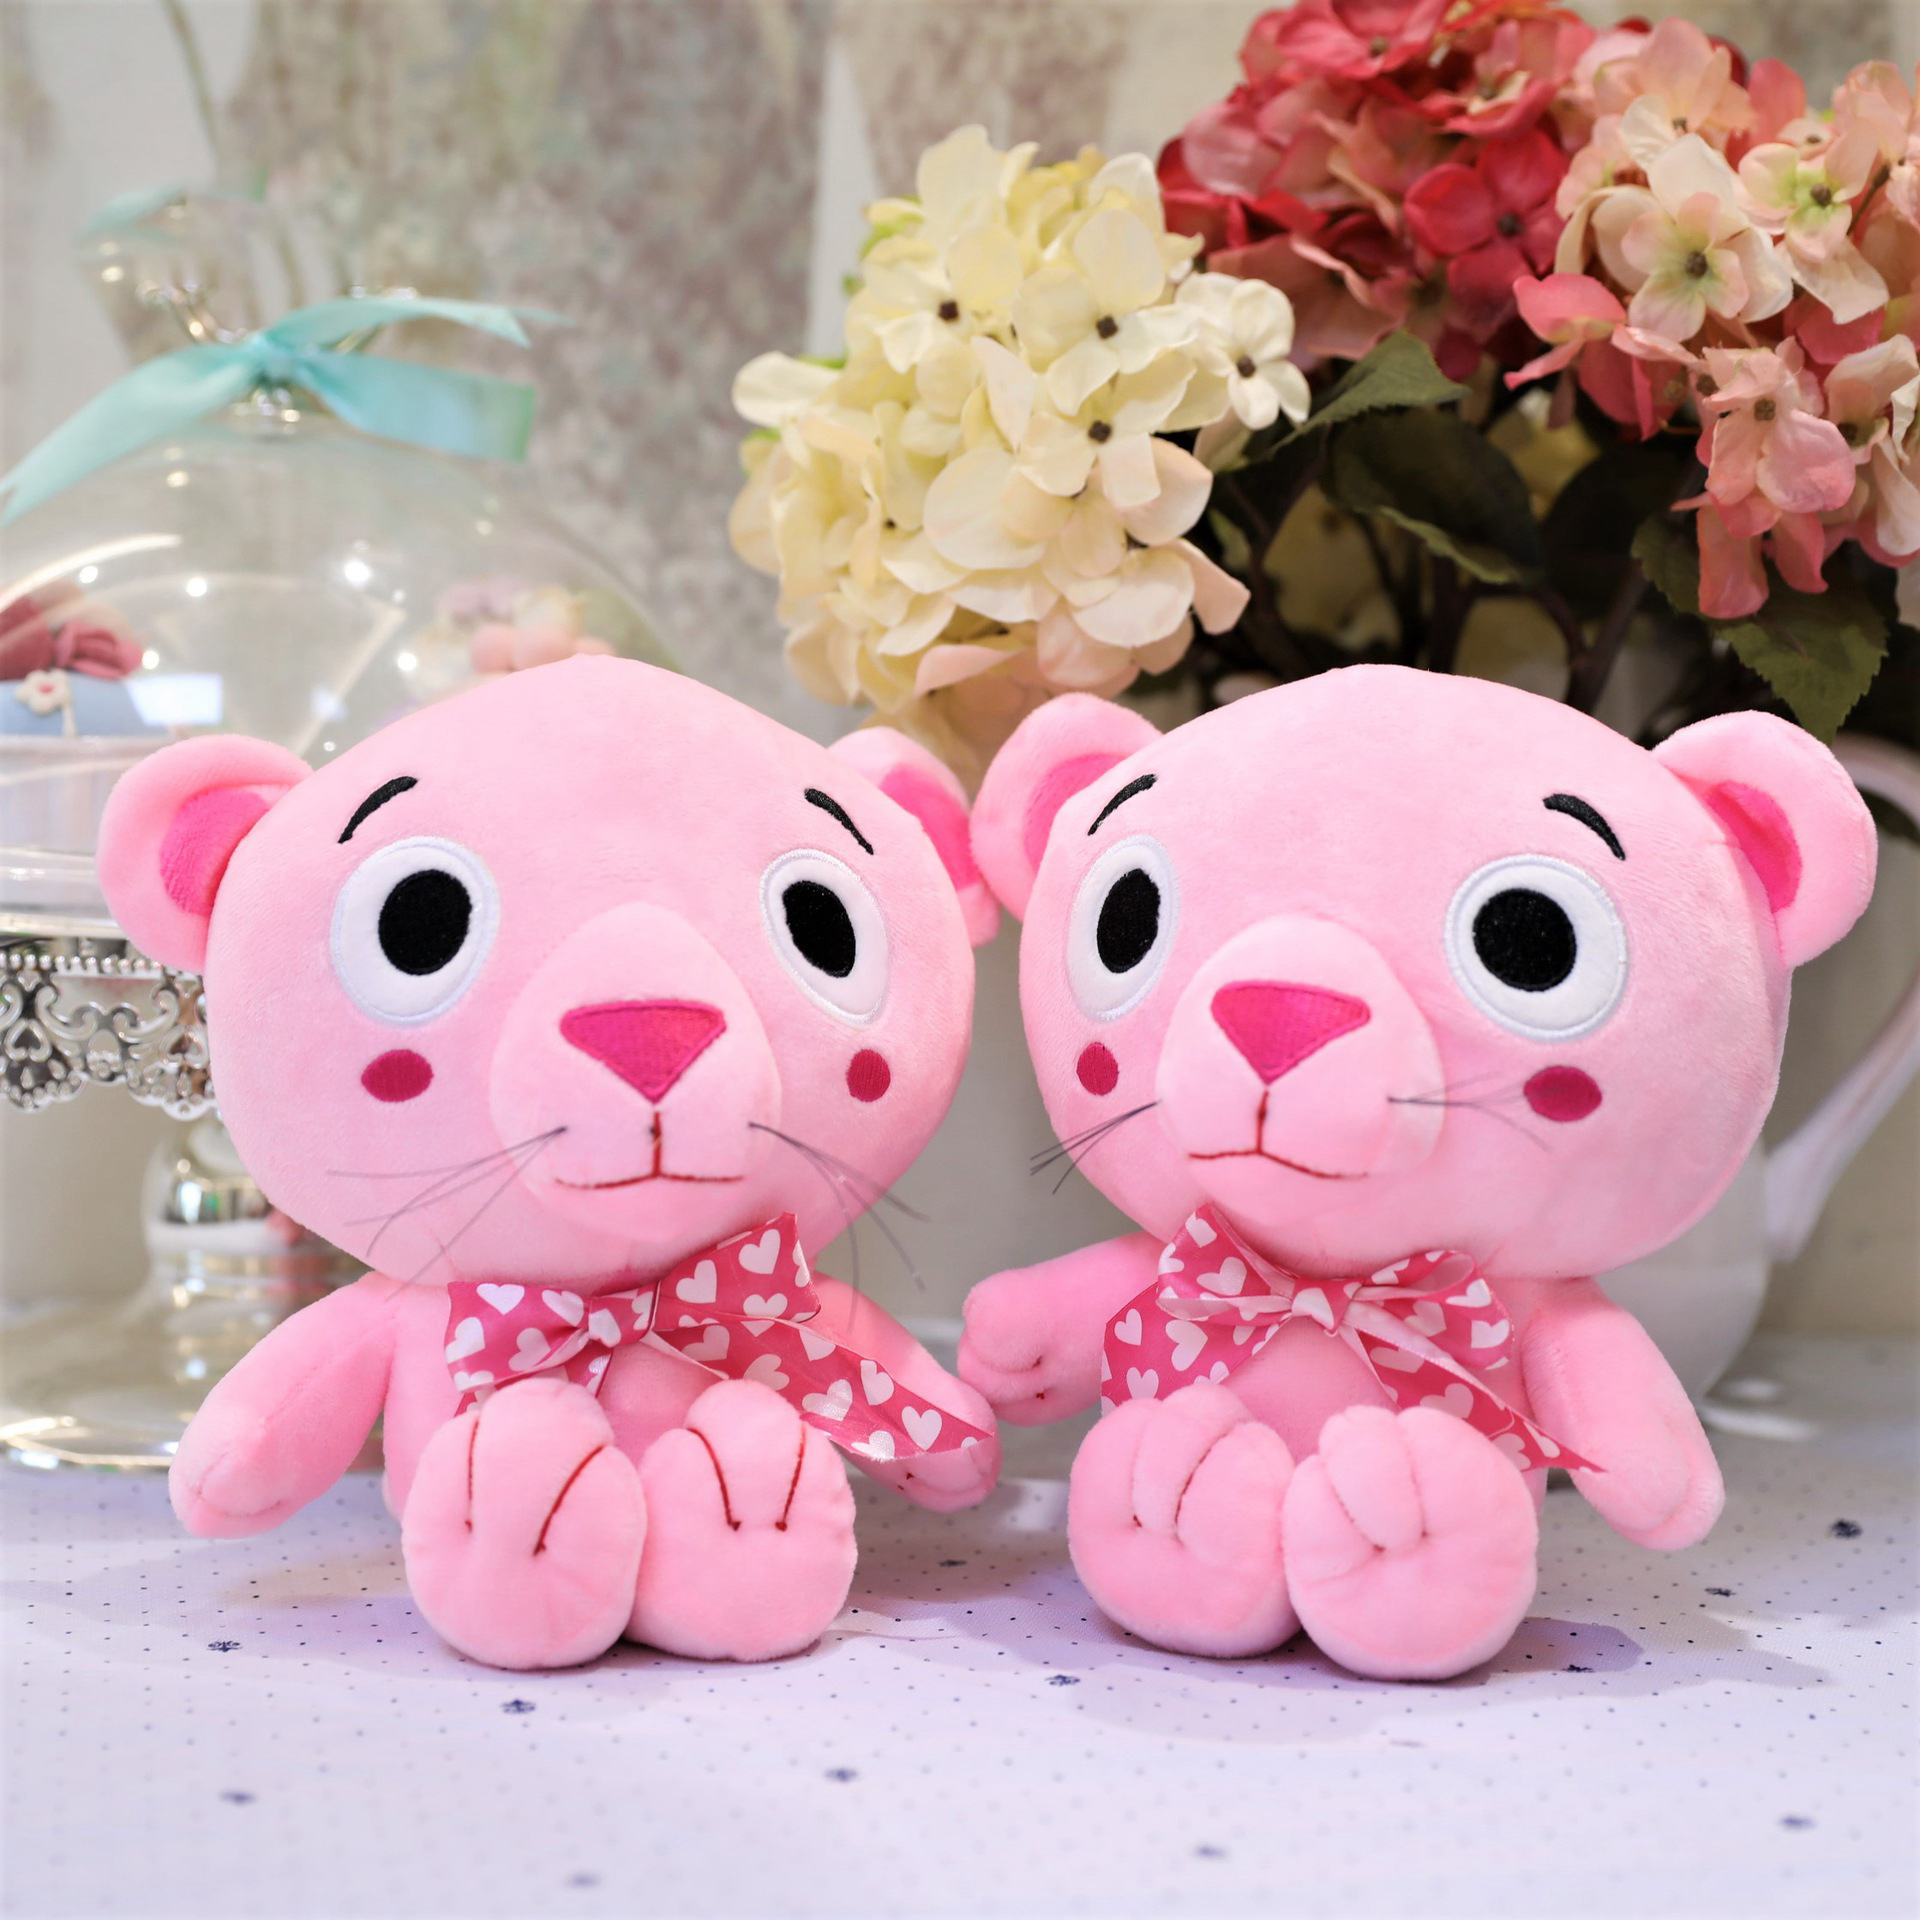 Pink Bear 20cm Boutique Doll PP Cotton Stuffed Animal Plush Dolls Plush Toy Anime Plush Toys Birthday Gifts for Kids Girls